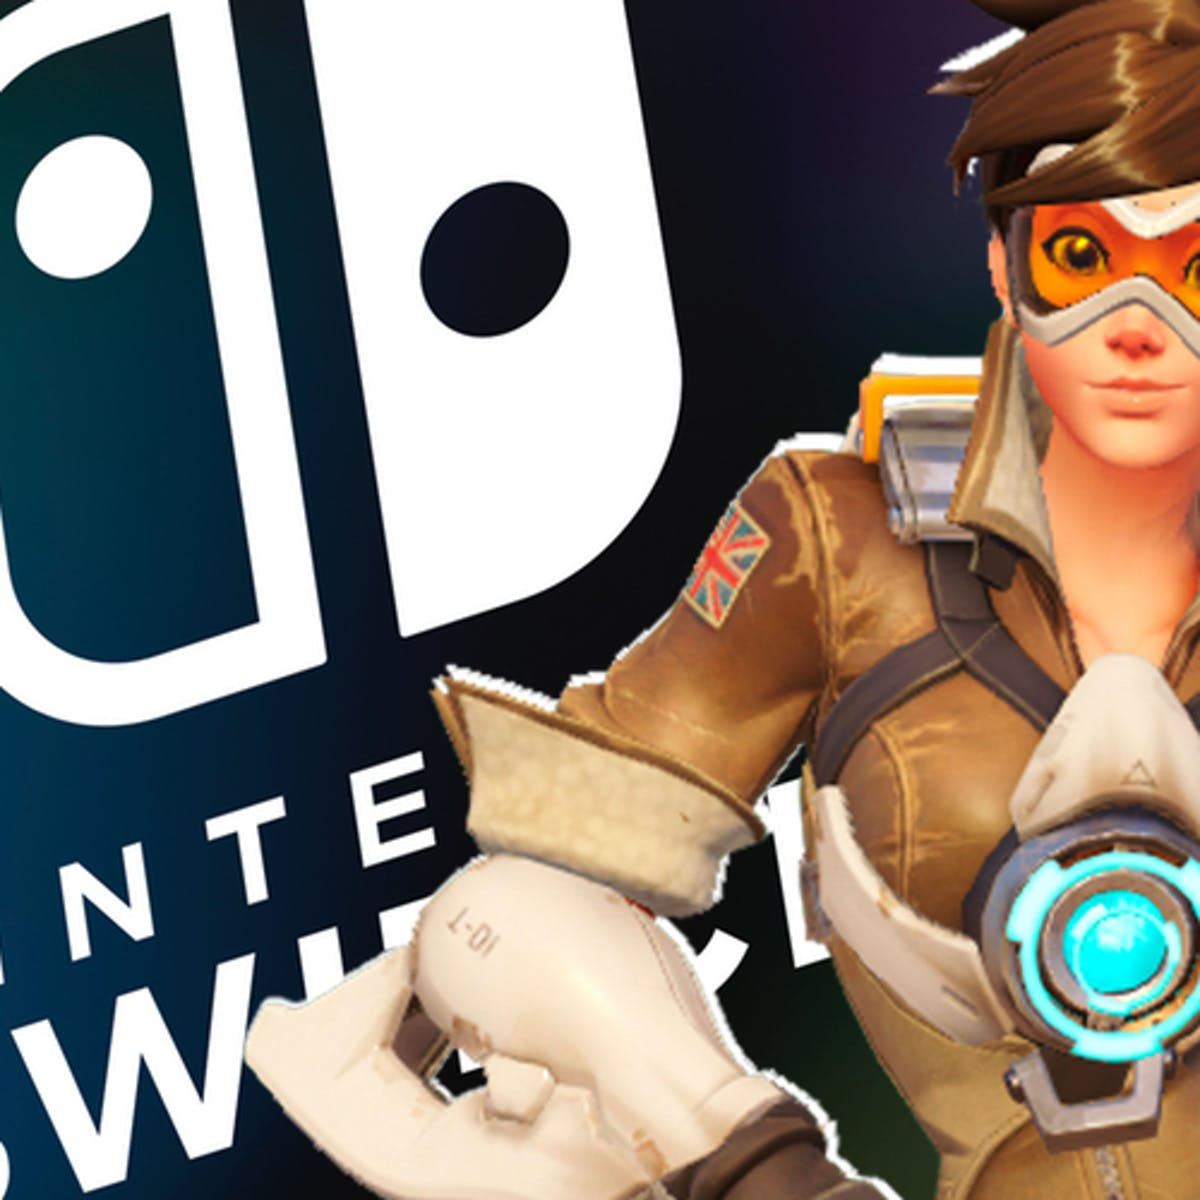 Overwatch' Switch cross-play: Blizzard is